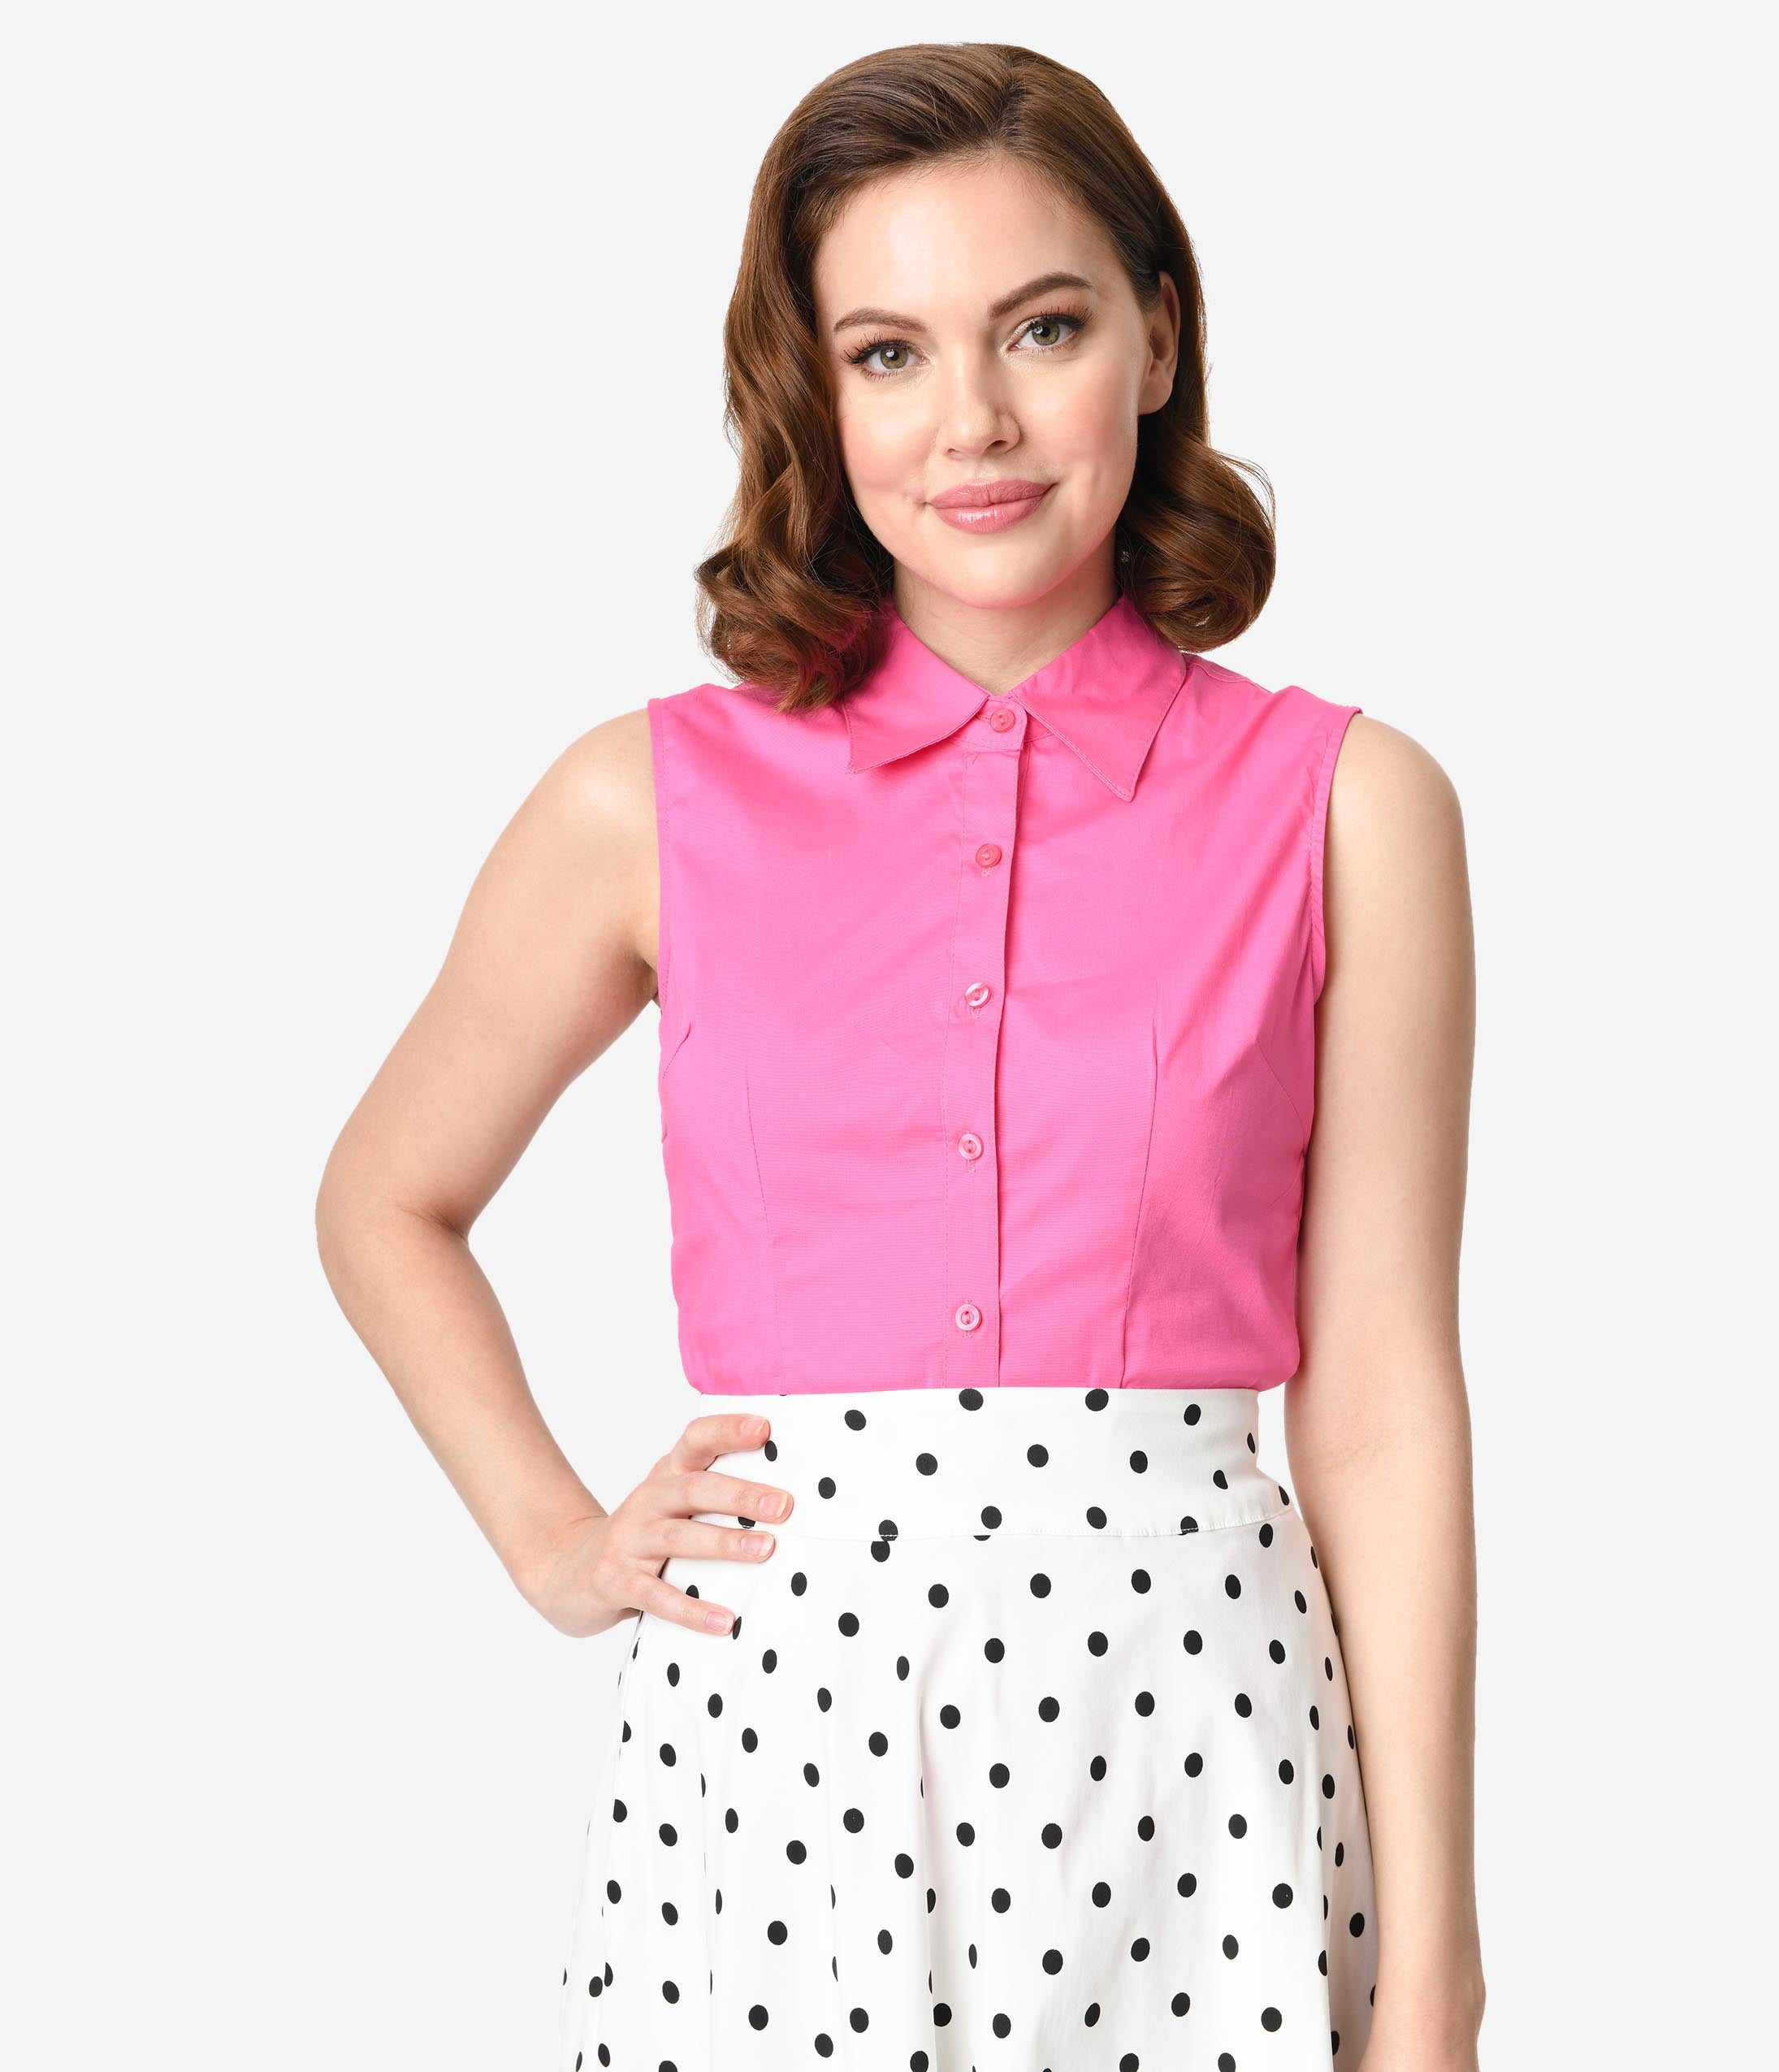 1950s Rockabilly & Pin Up Tops, Blouses, Shirts Fuchsia Pink Sleeveless Collared Cotton Button Up Blouse $24.00 AT vintagedancer.com